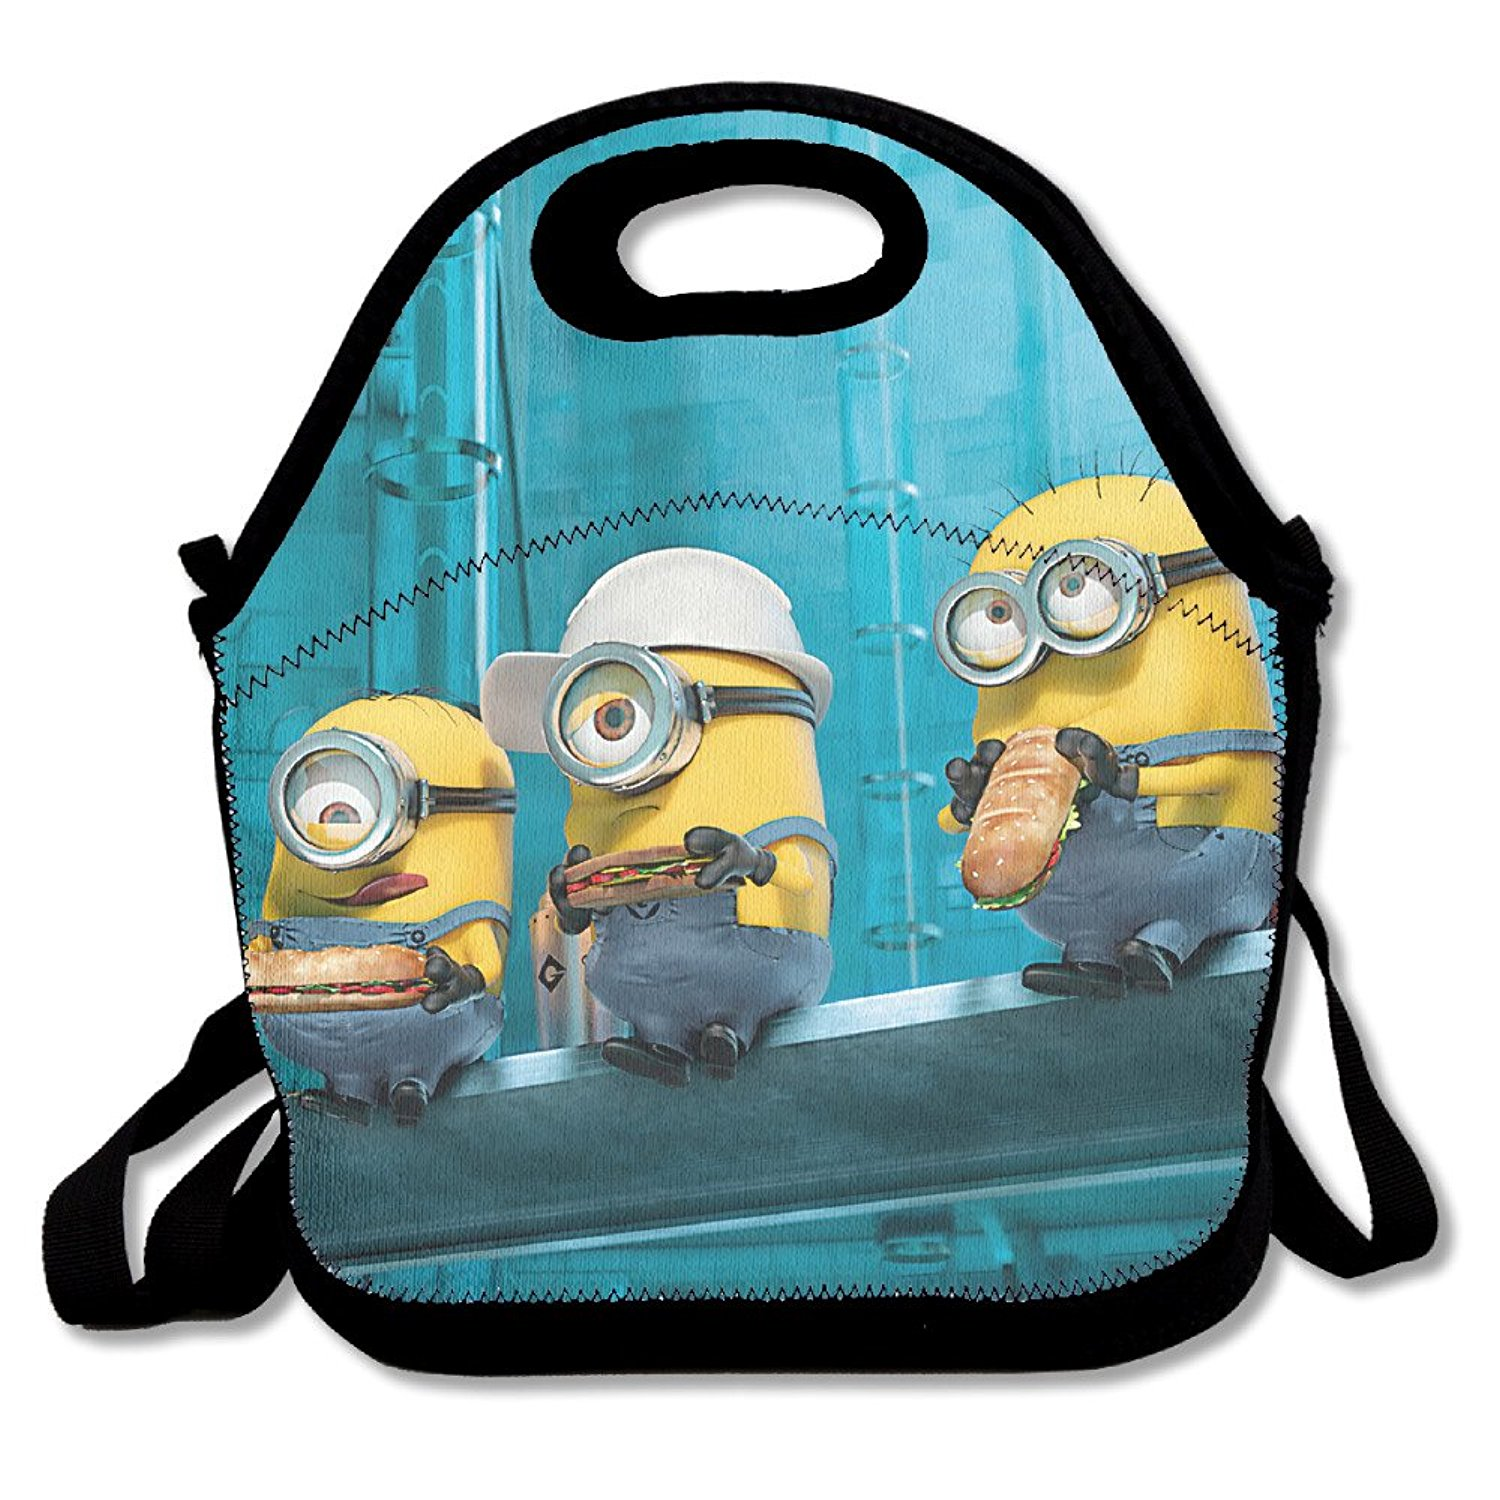 Despicable Me 3 Movie Collection Travel Tote Lunch Bag